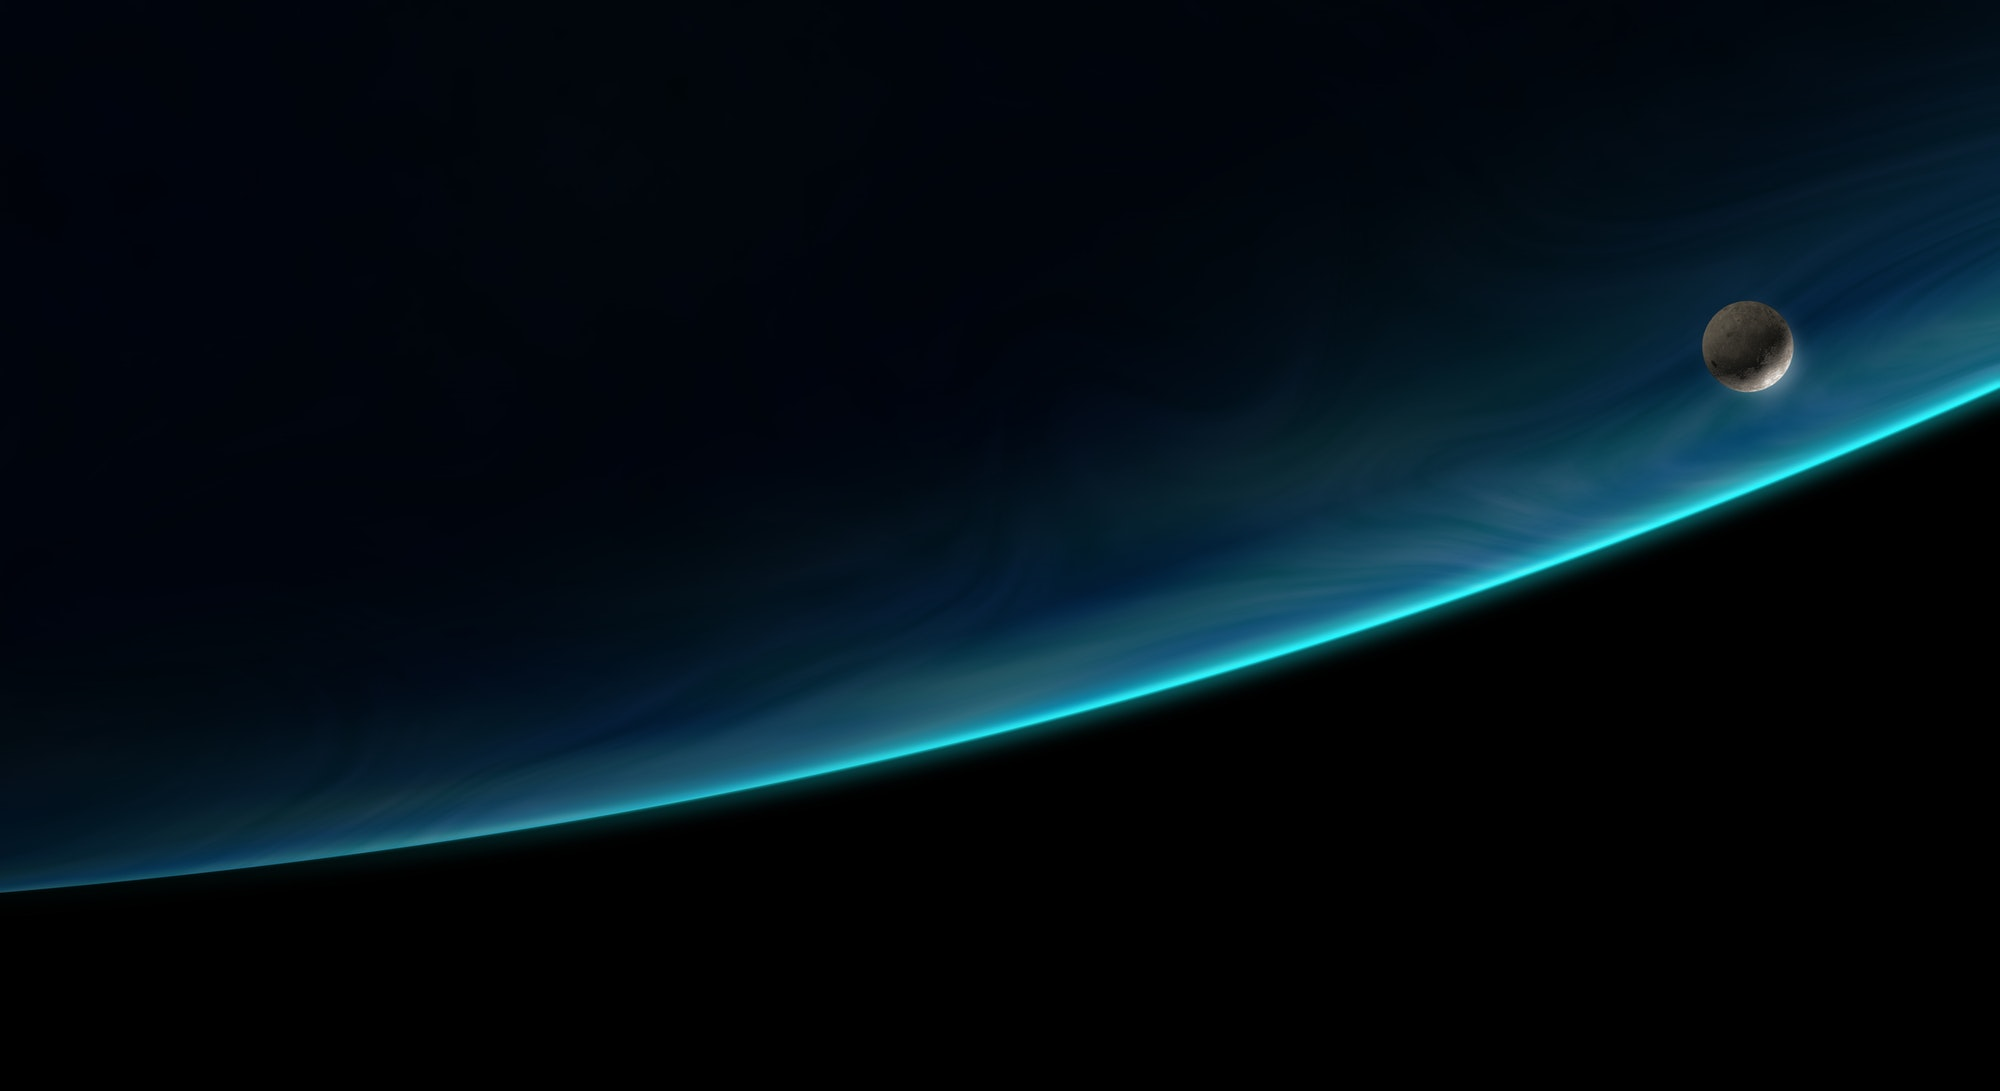 moon orbiting the blue planet, 3d illustration